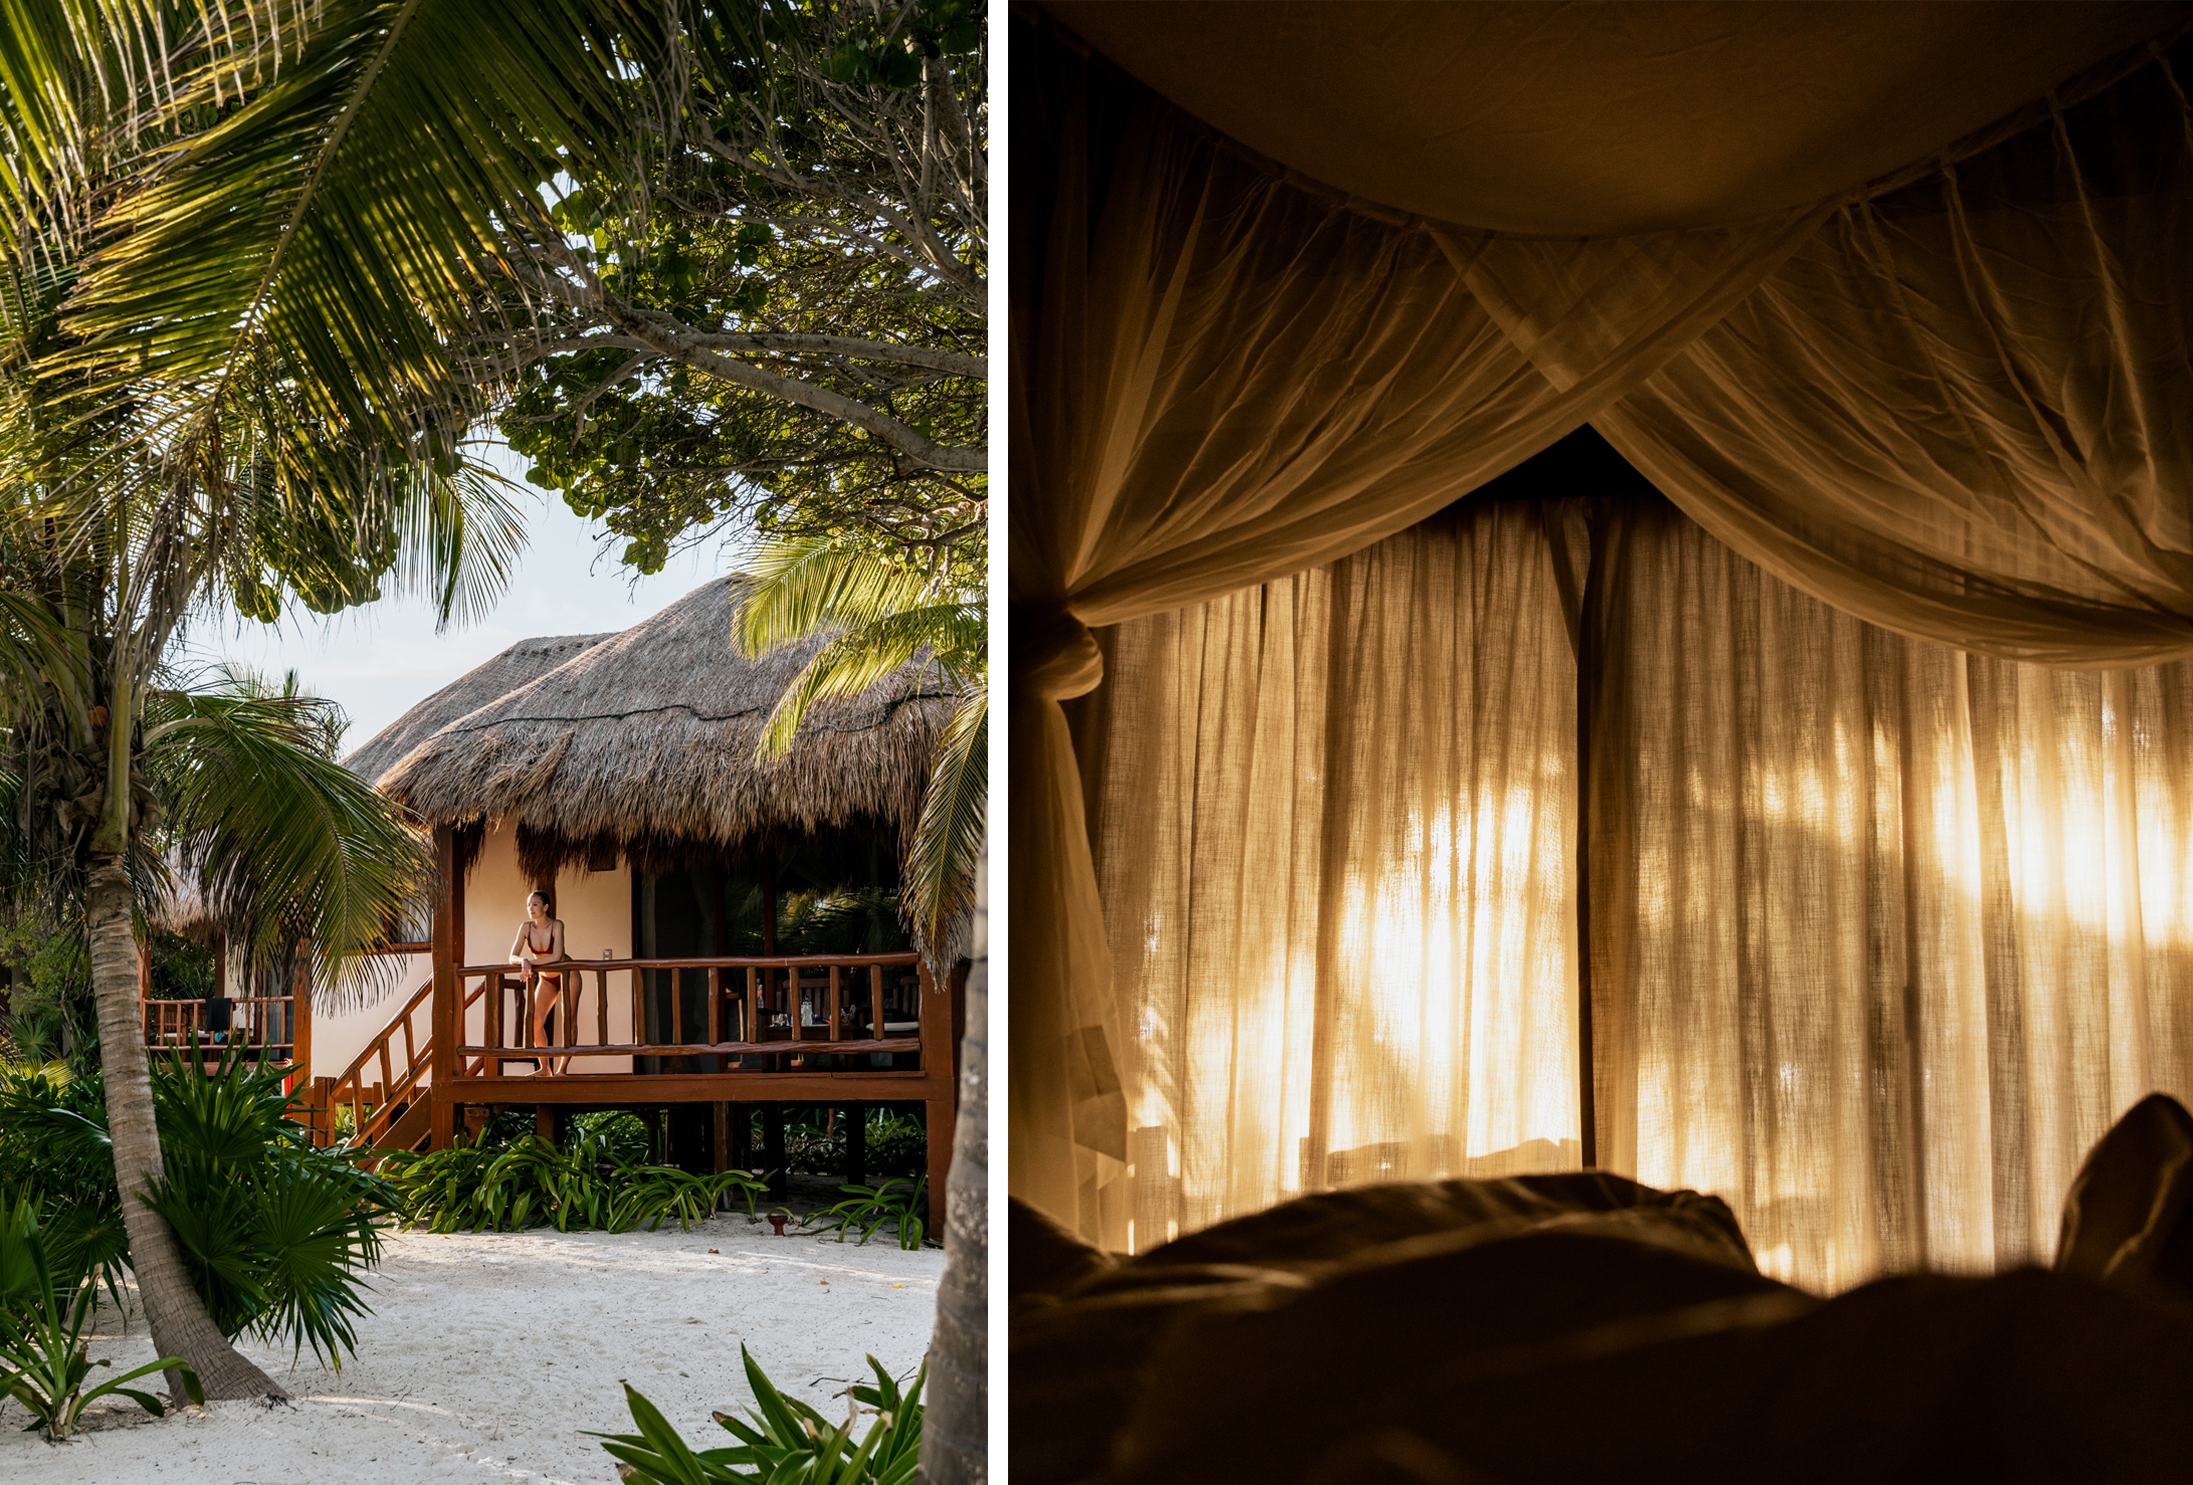 Mukan private beach houses and bedroom